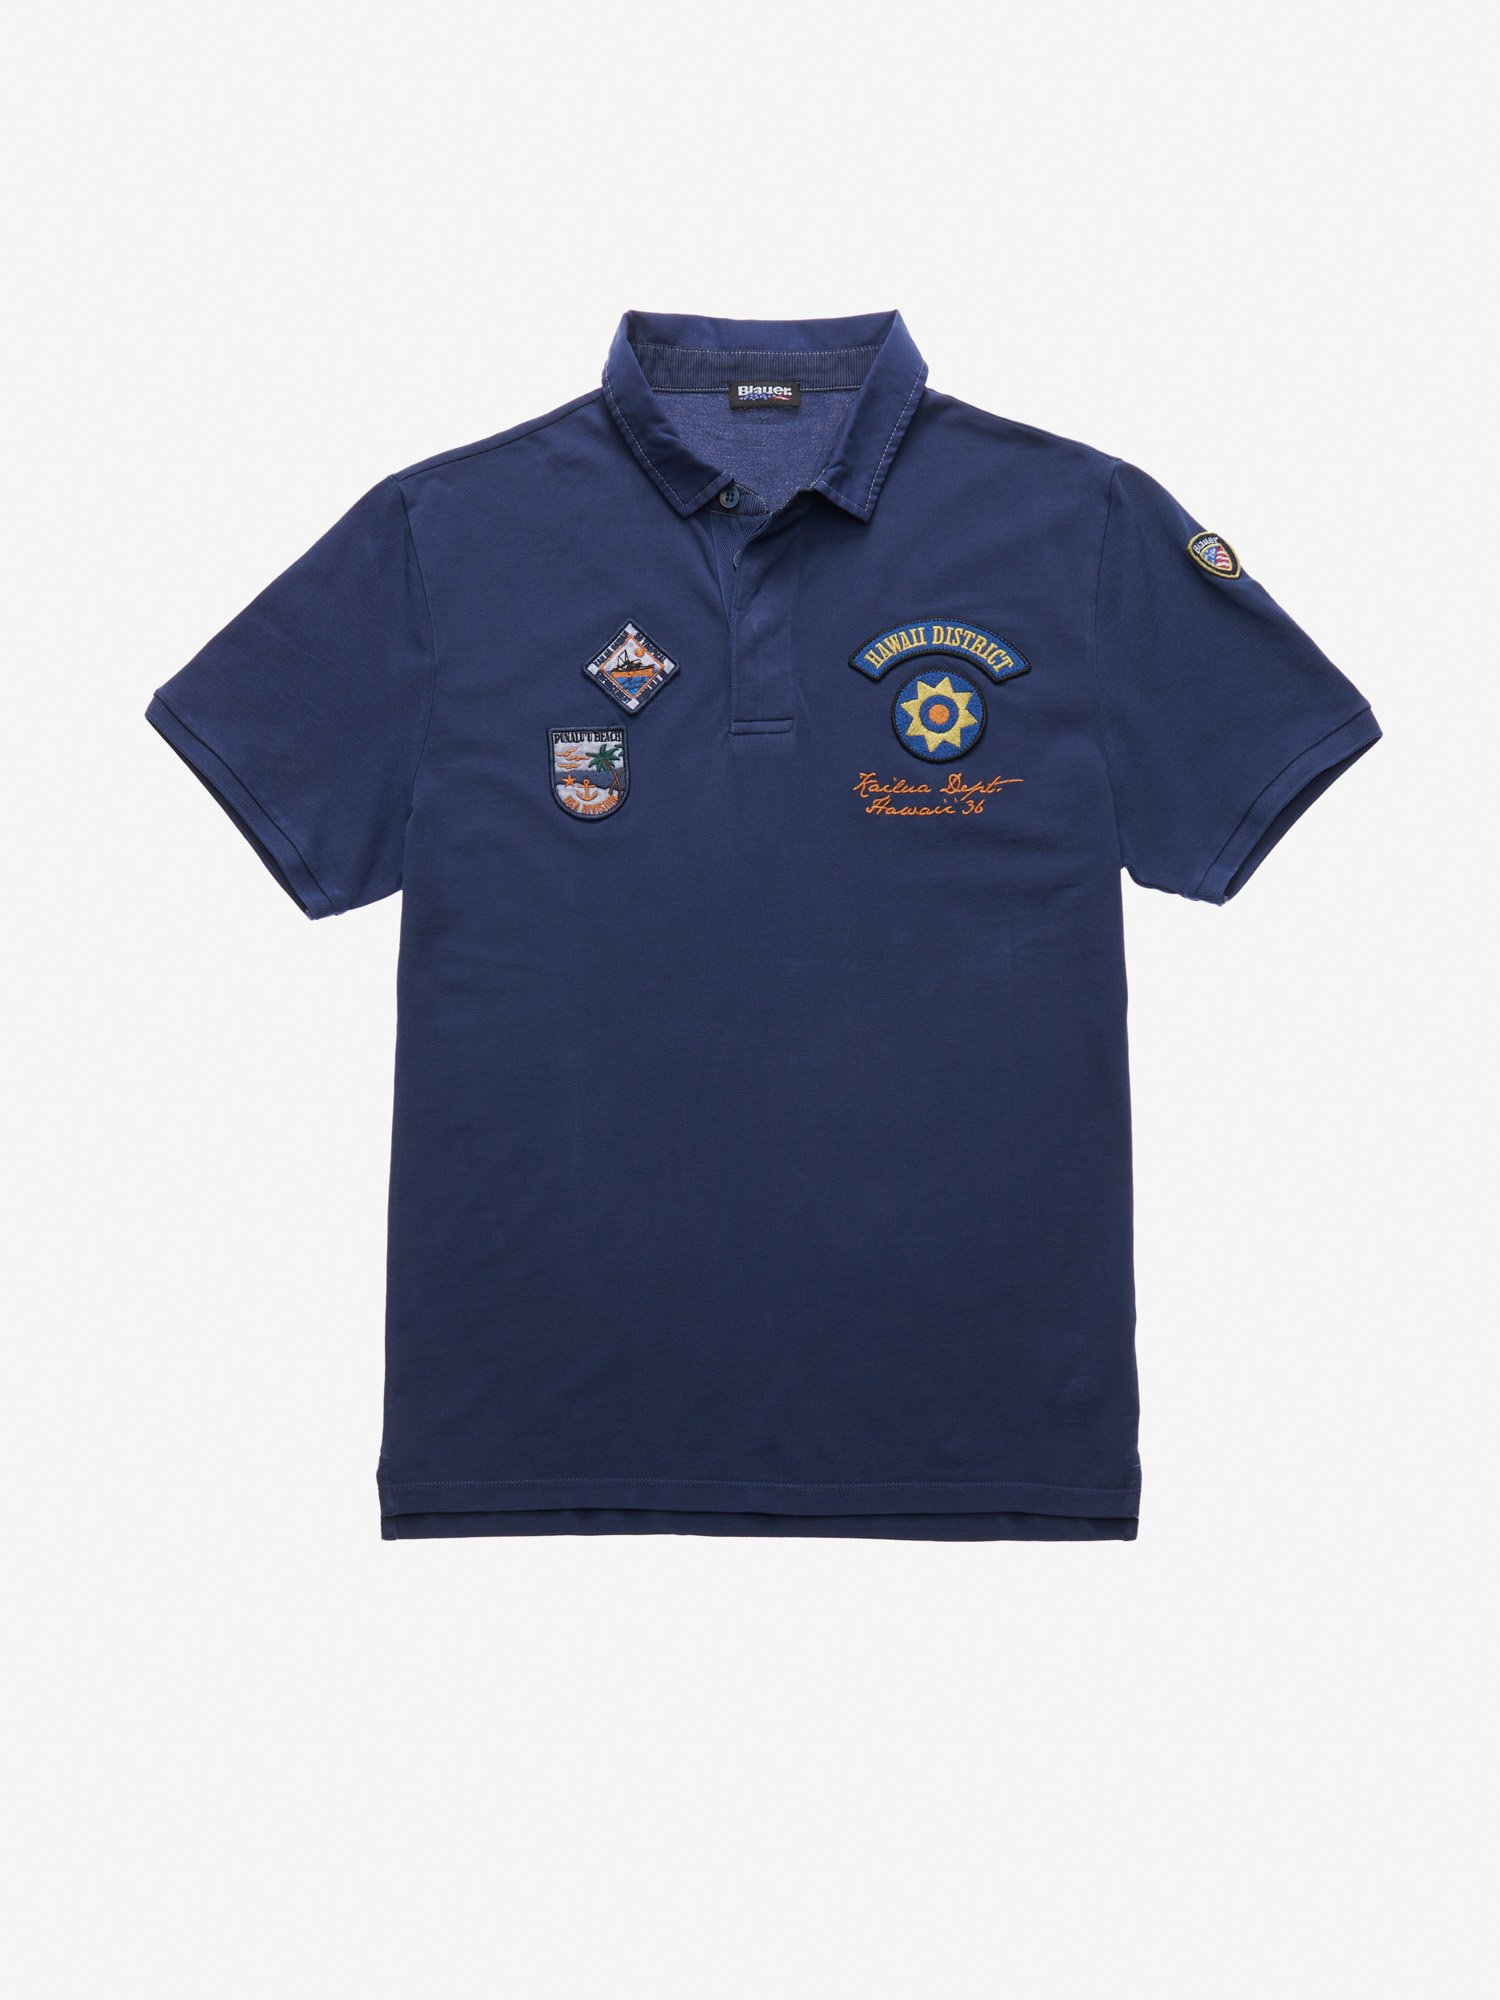 Blauer - HAWAII DISTRICT POLO SHIRT - Blue Ink - Blauer